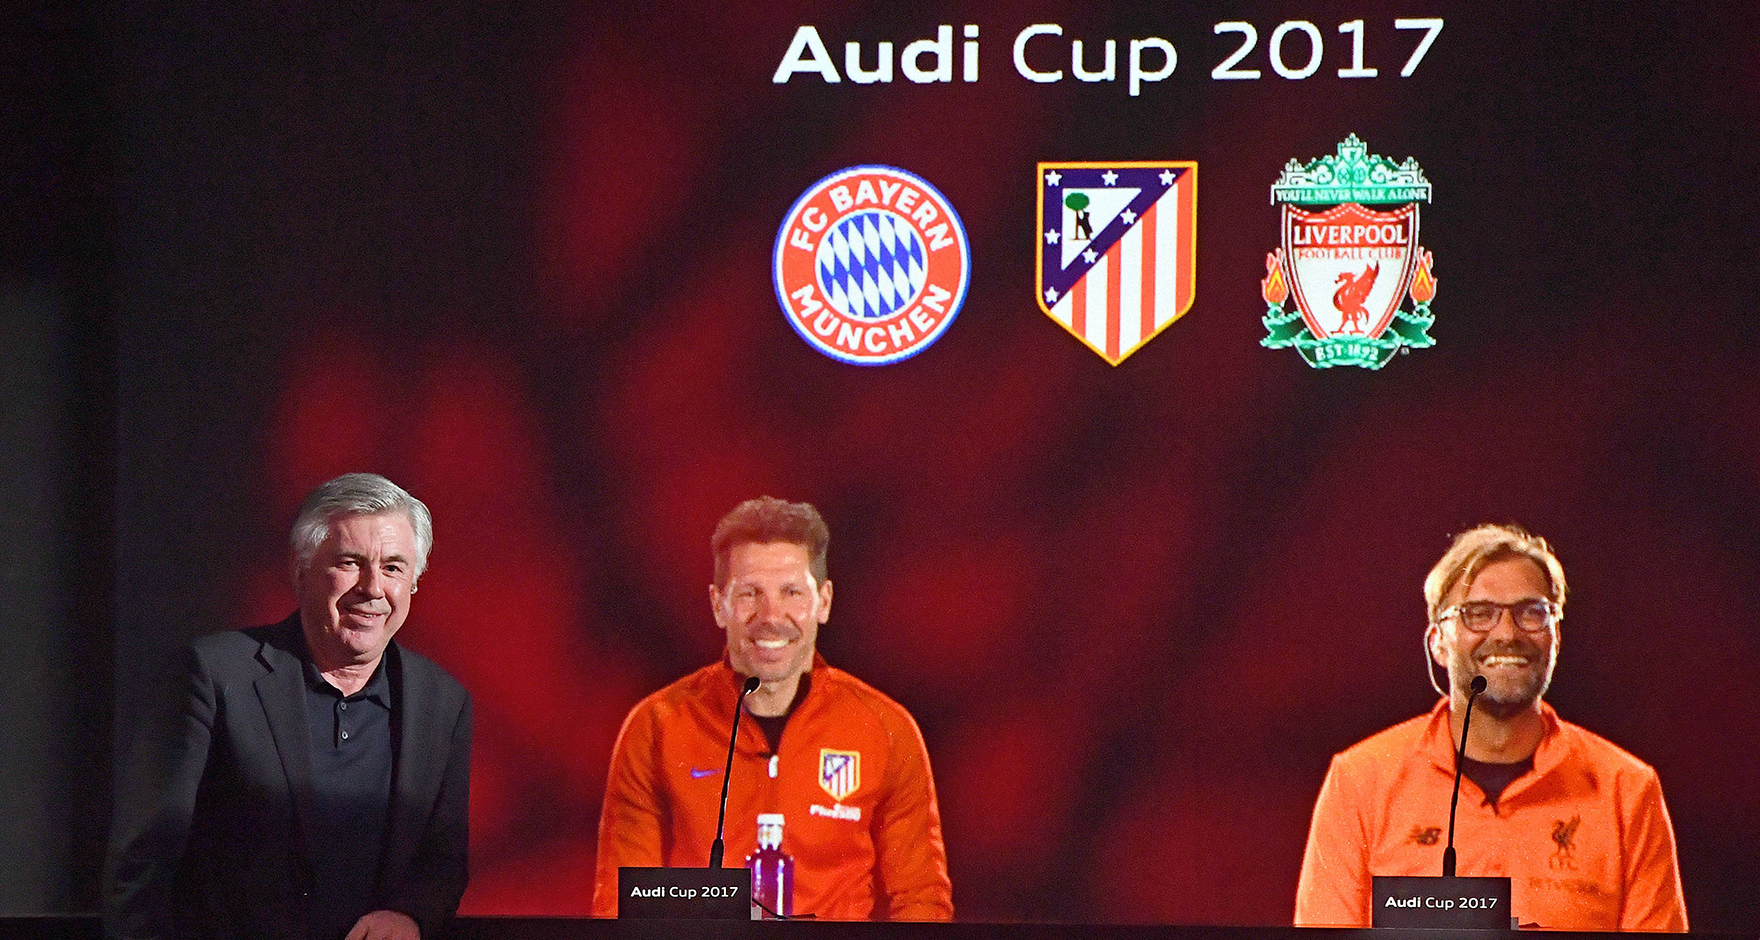 Prior to this years Audi Cup, the press conference featured holograms of Jürgen Klopp and Diego Simeone